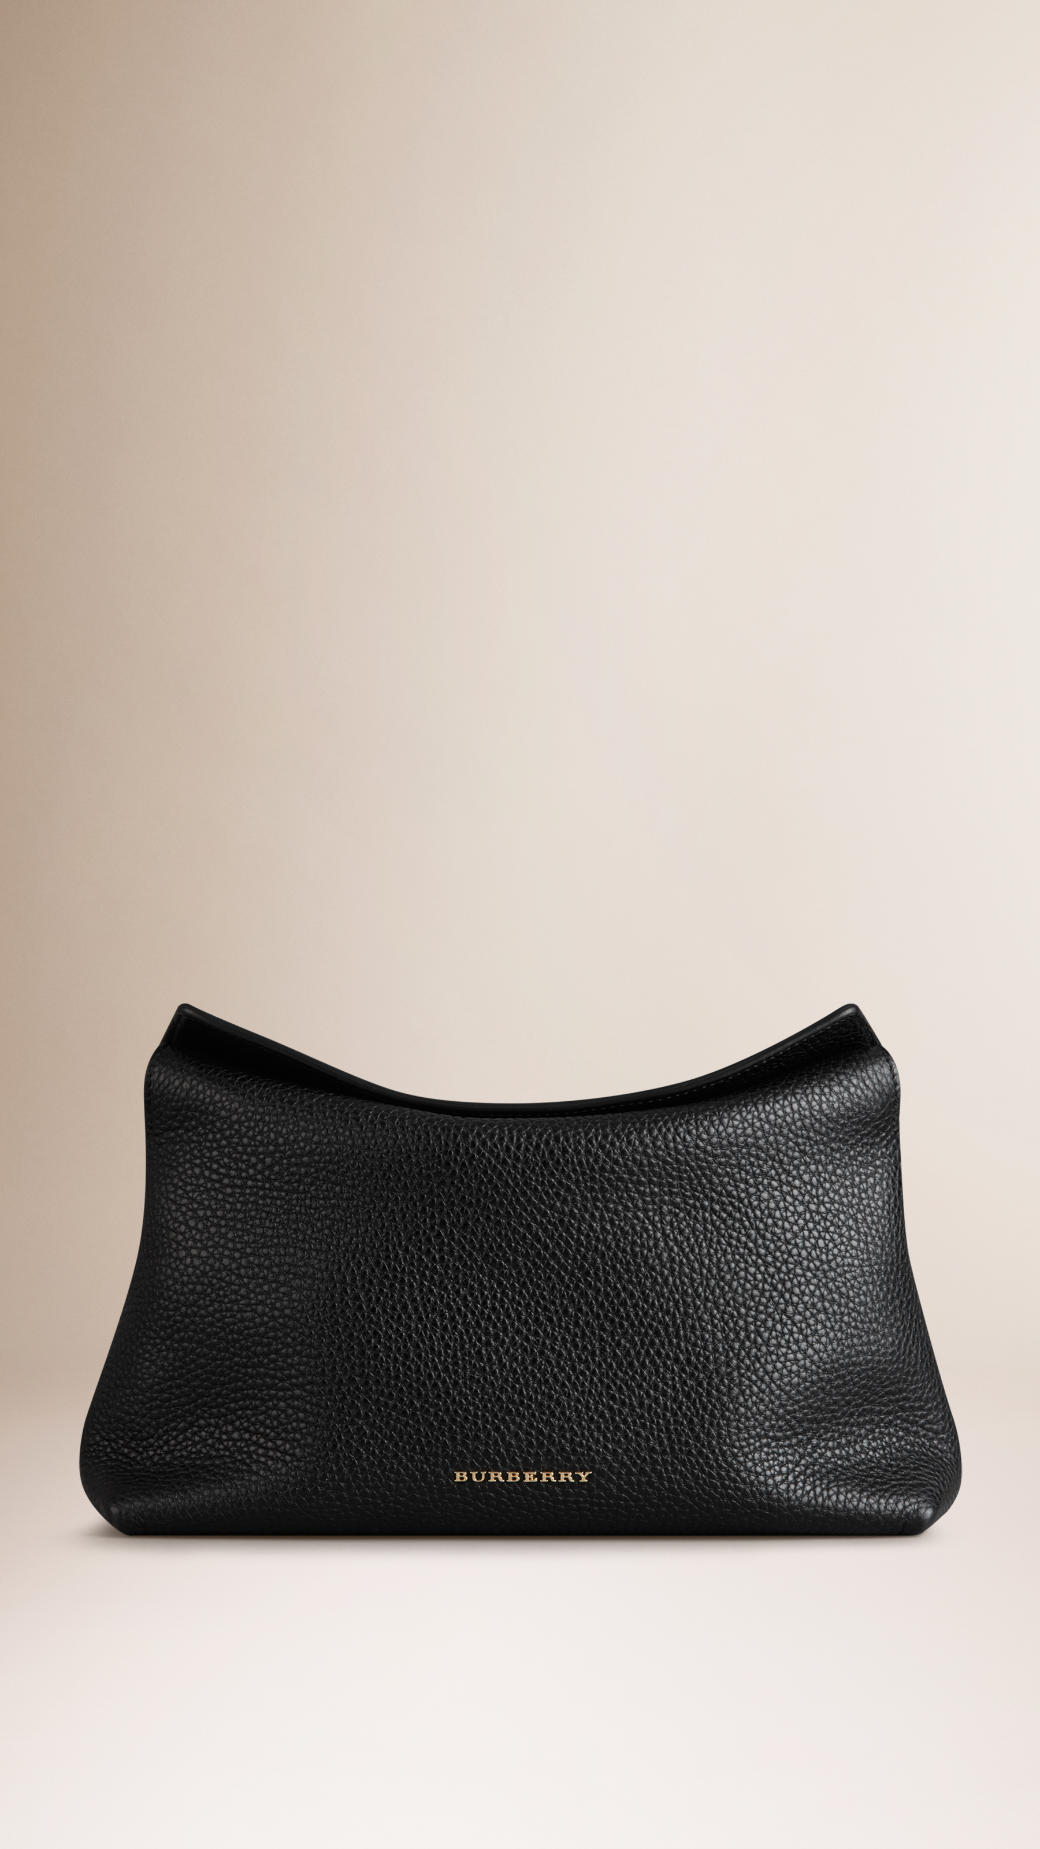 c26effc93bd Burberry Small Grainy Leather Clutch Bag in Black - Lyst